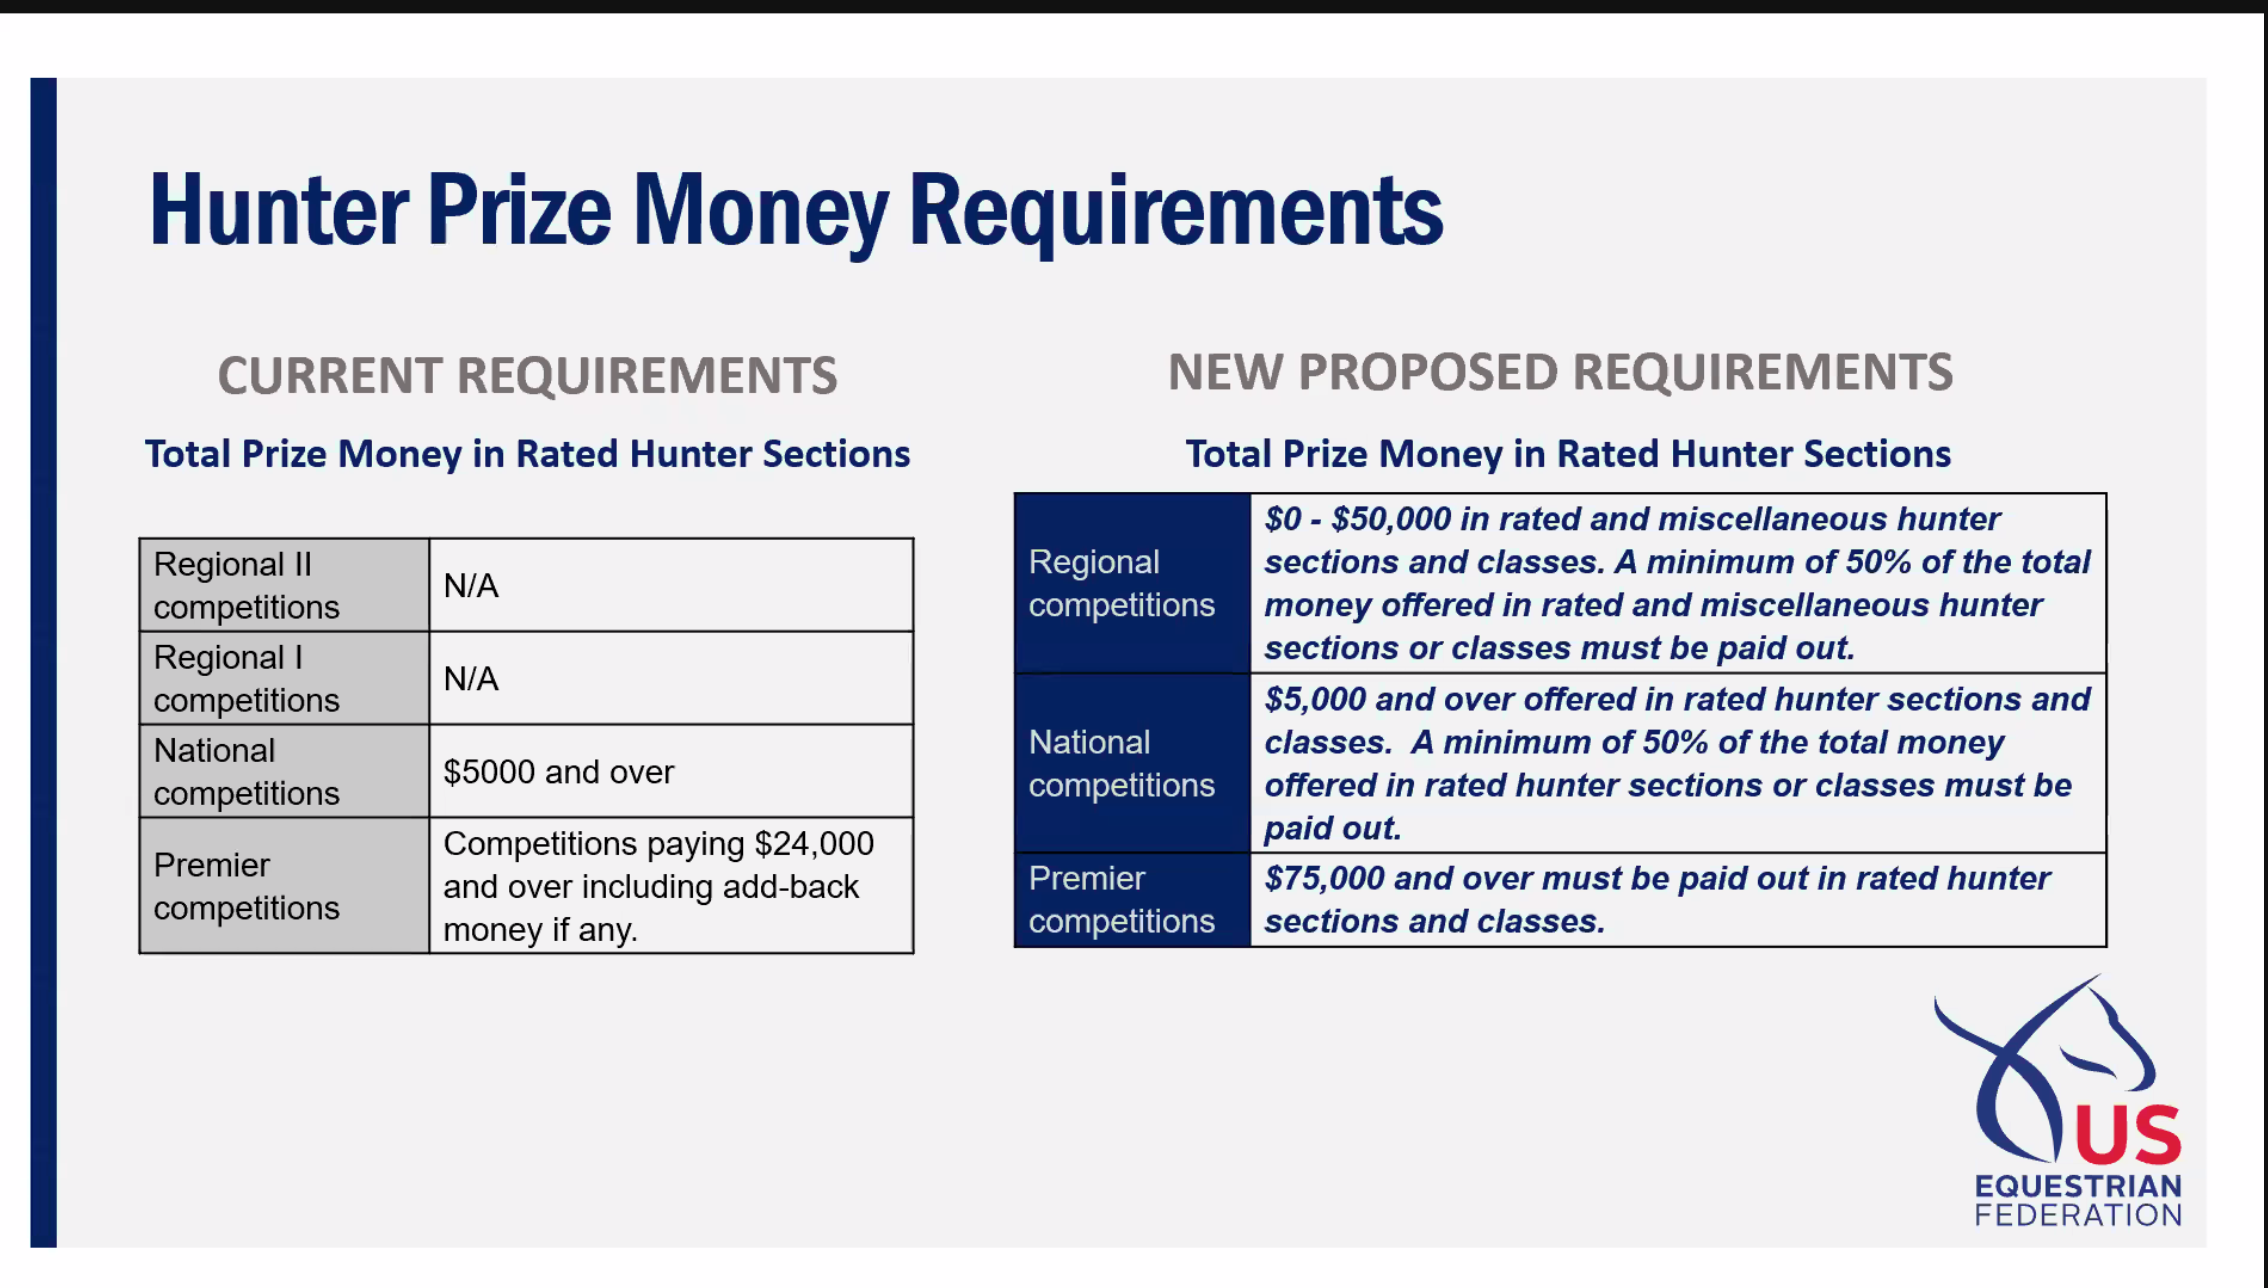 *Hunter Prize Money Requirements